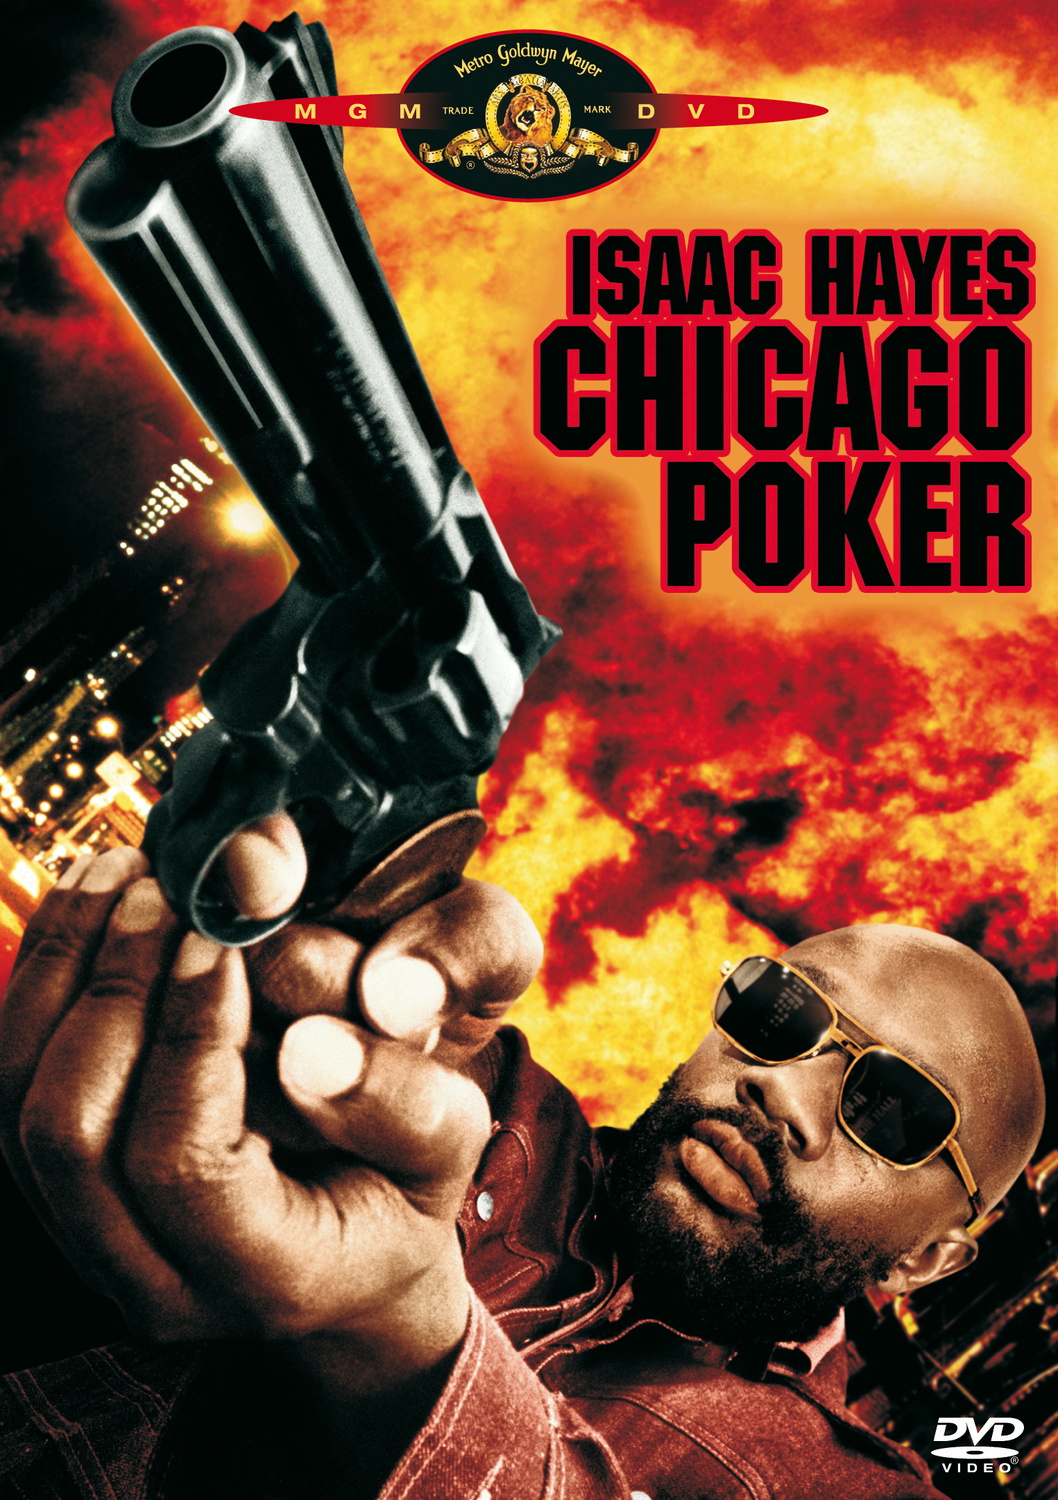 Soul Cinema - Chicago Poker